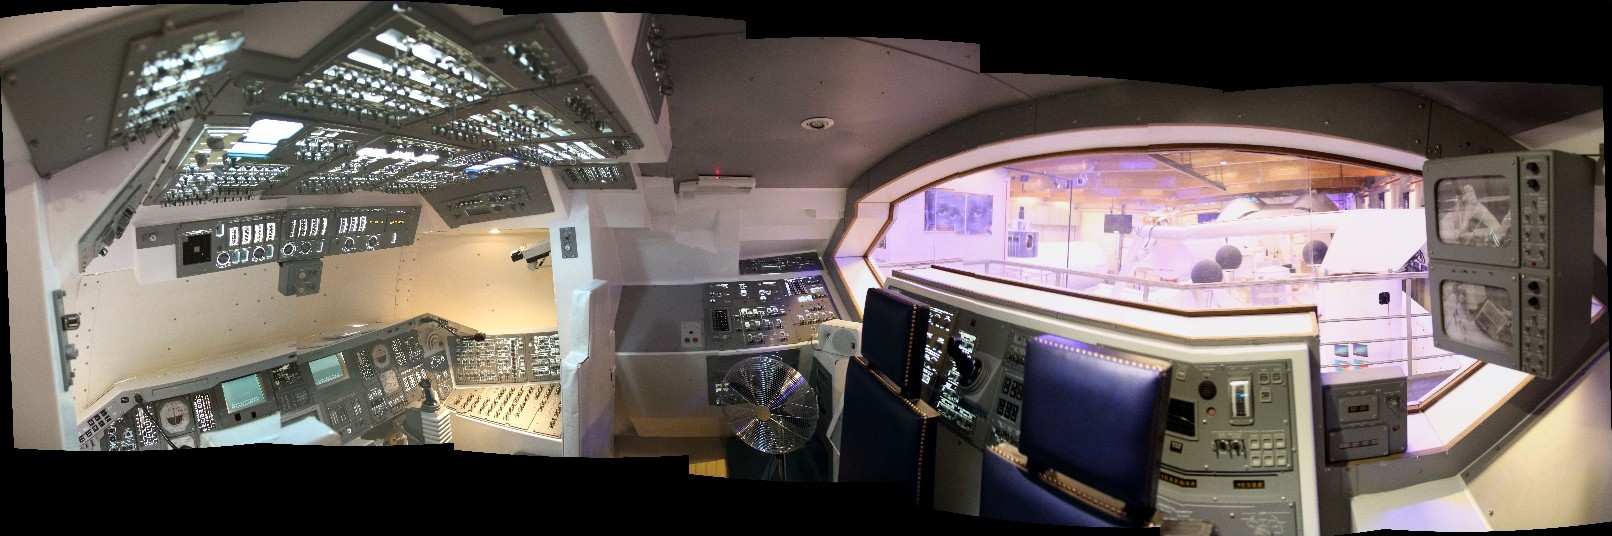 15 02 28 - 09h 29m 36s - Eurospace Center intérieur navette Amicitia_stitch r